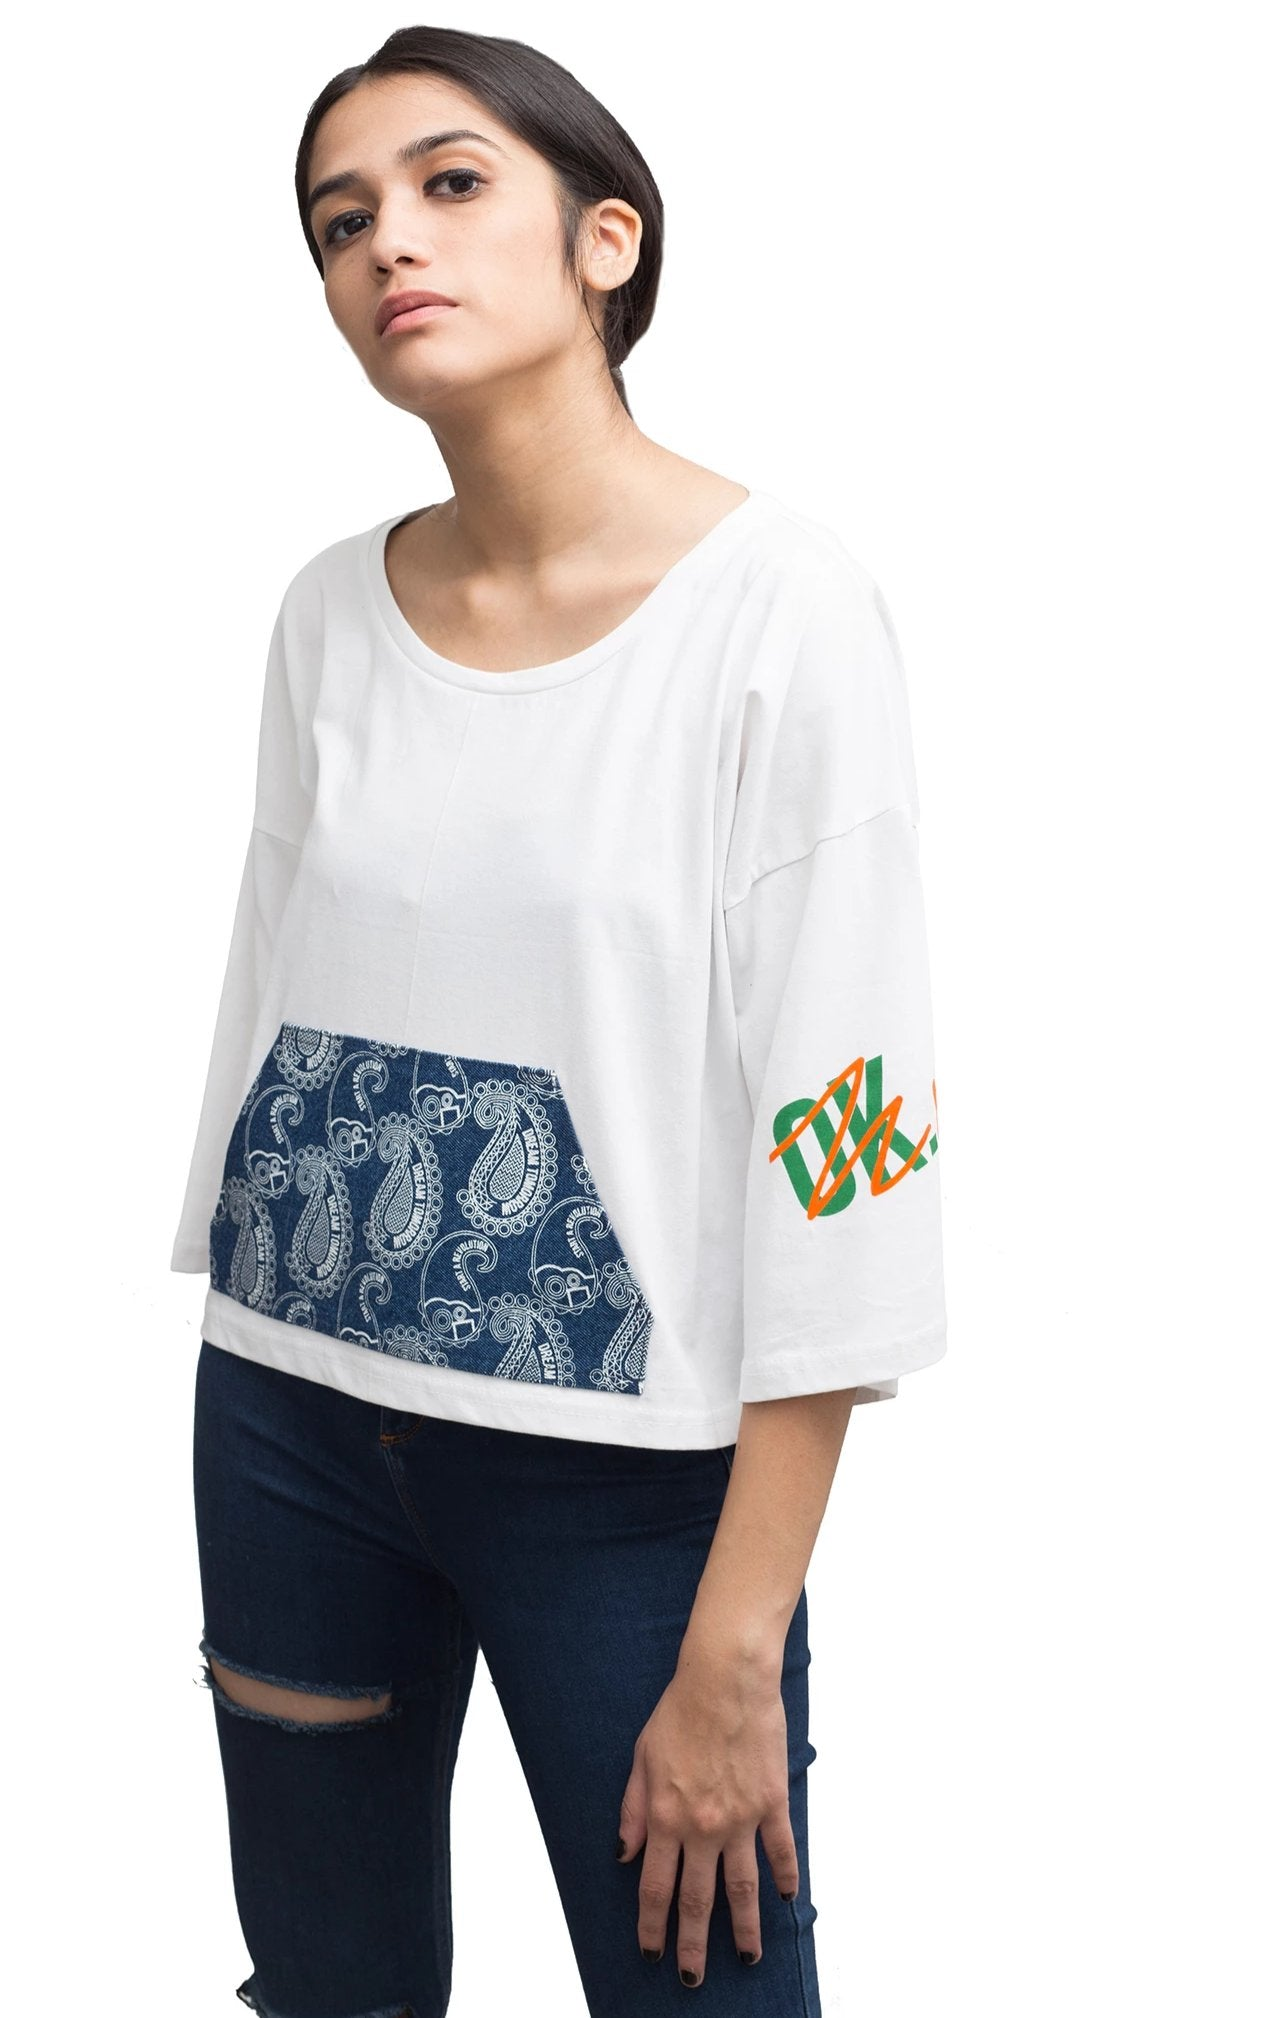 100% Cotton graphic t-shirt with ok nope print